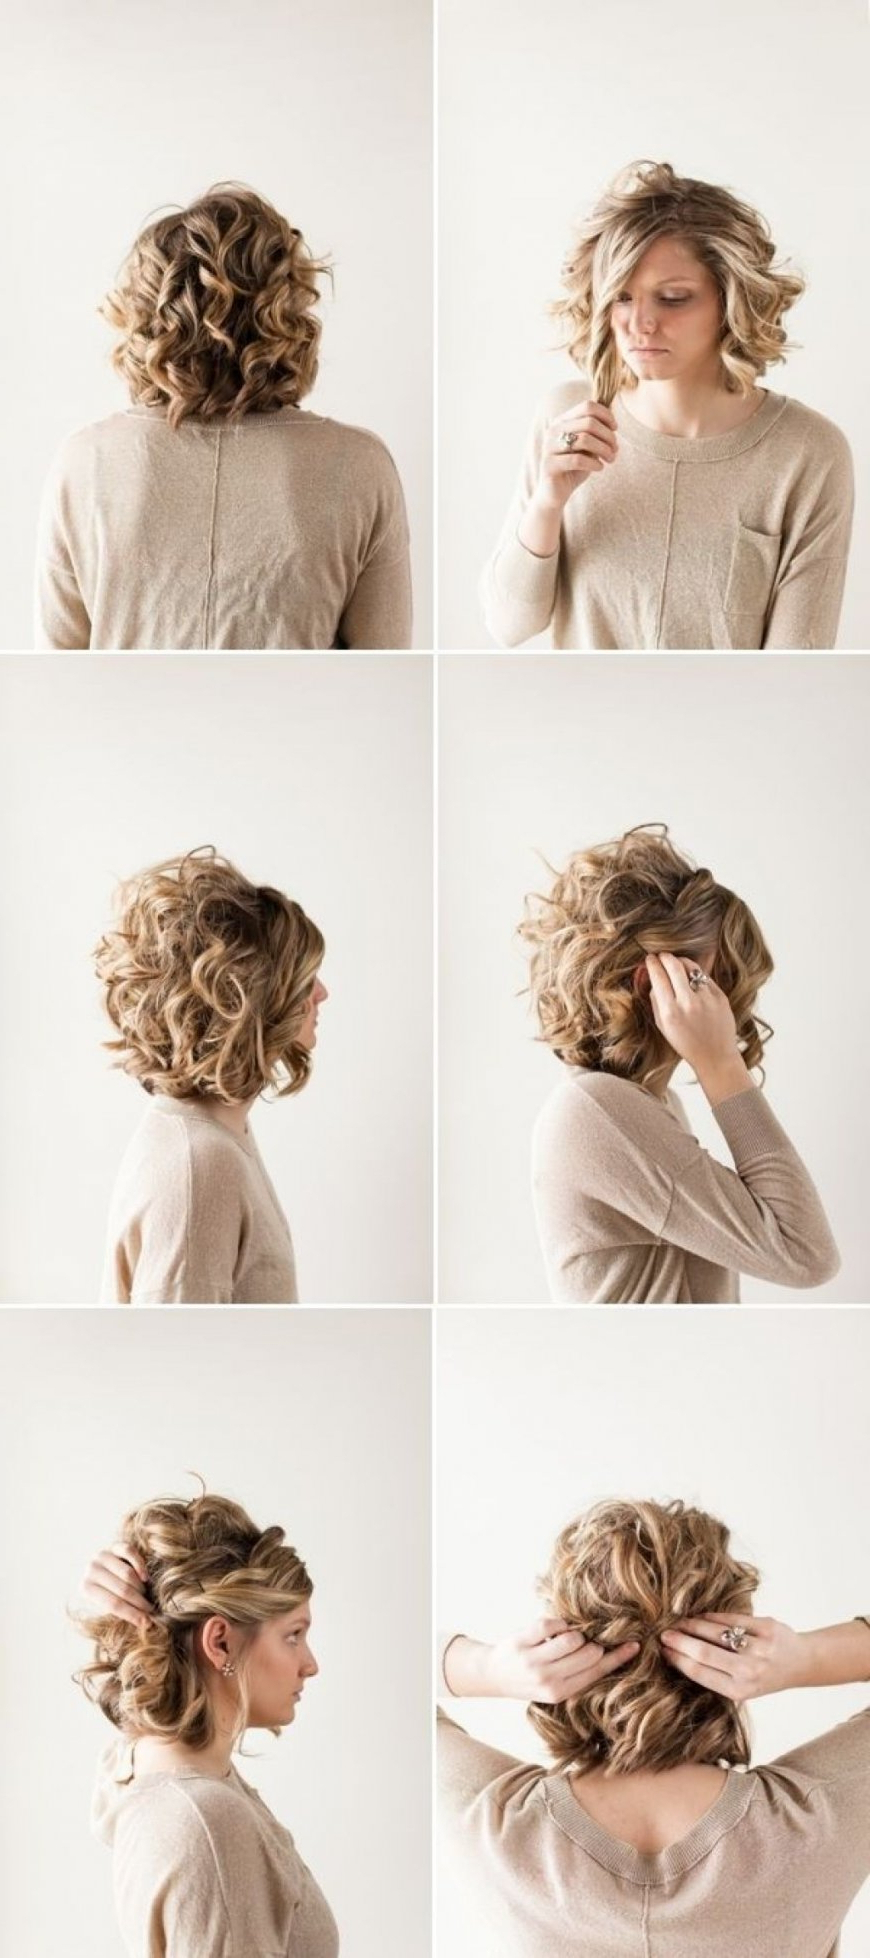 Cute Wedding Hairstyles For Short Hair » Best Hairstyles & Haircuts Intended For Hairstyle For Short Hair For Wedding (View 6 of 25)